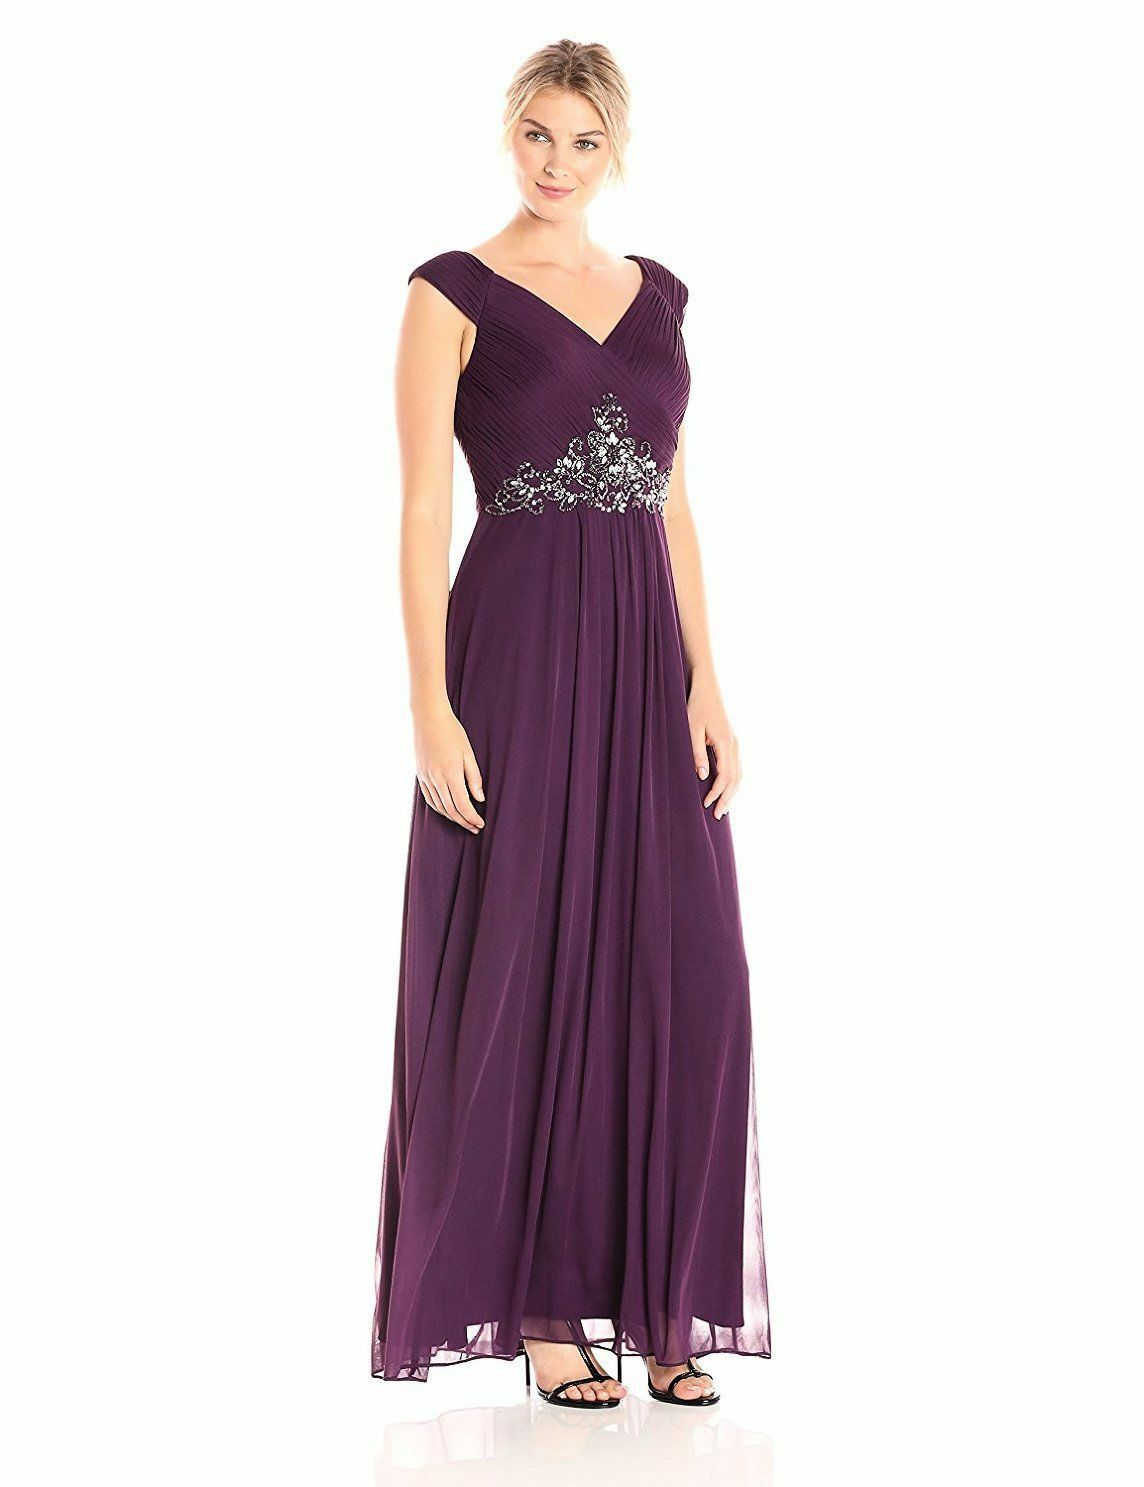 580 ALEX EVENINGS Women PURPLE A LINE PLEATED BODICE BEADED GOWN DRESS SIZE 10